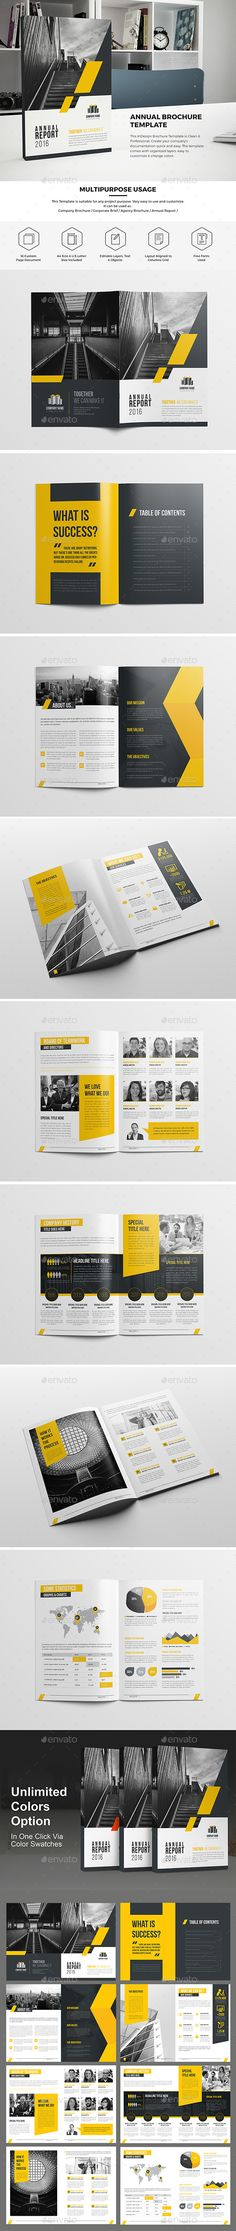 Haweya Annual Report Template InDesign INDD. Download here: http://graphicriver.net/item/haweya-annual-report-v02-/16435688?ref=ksioks